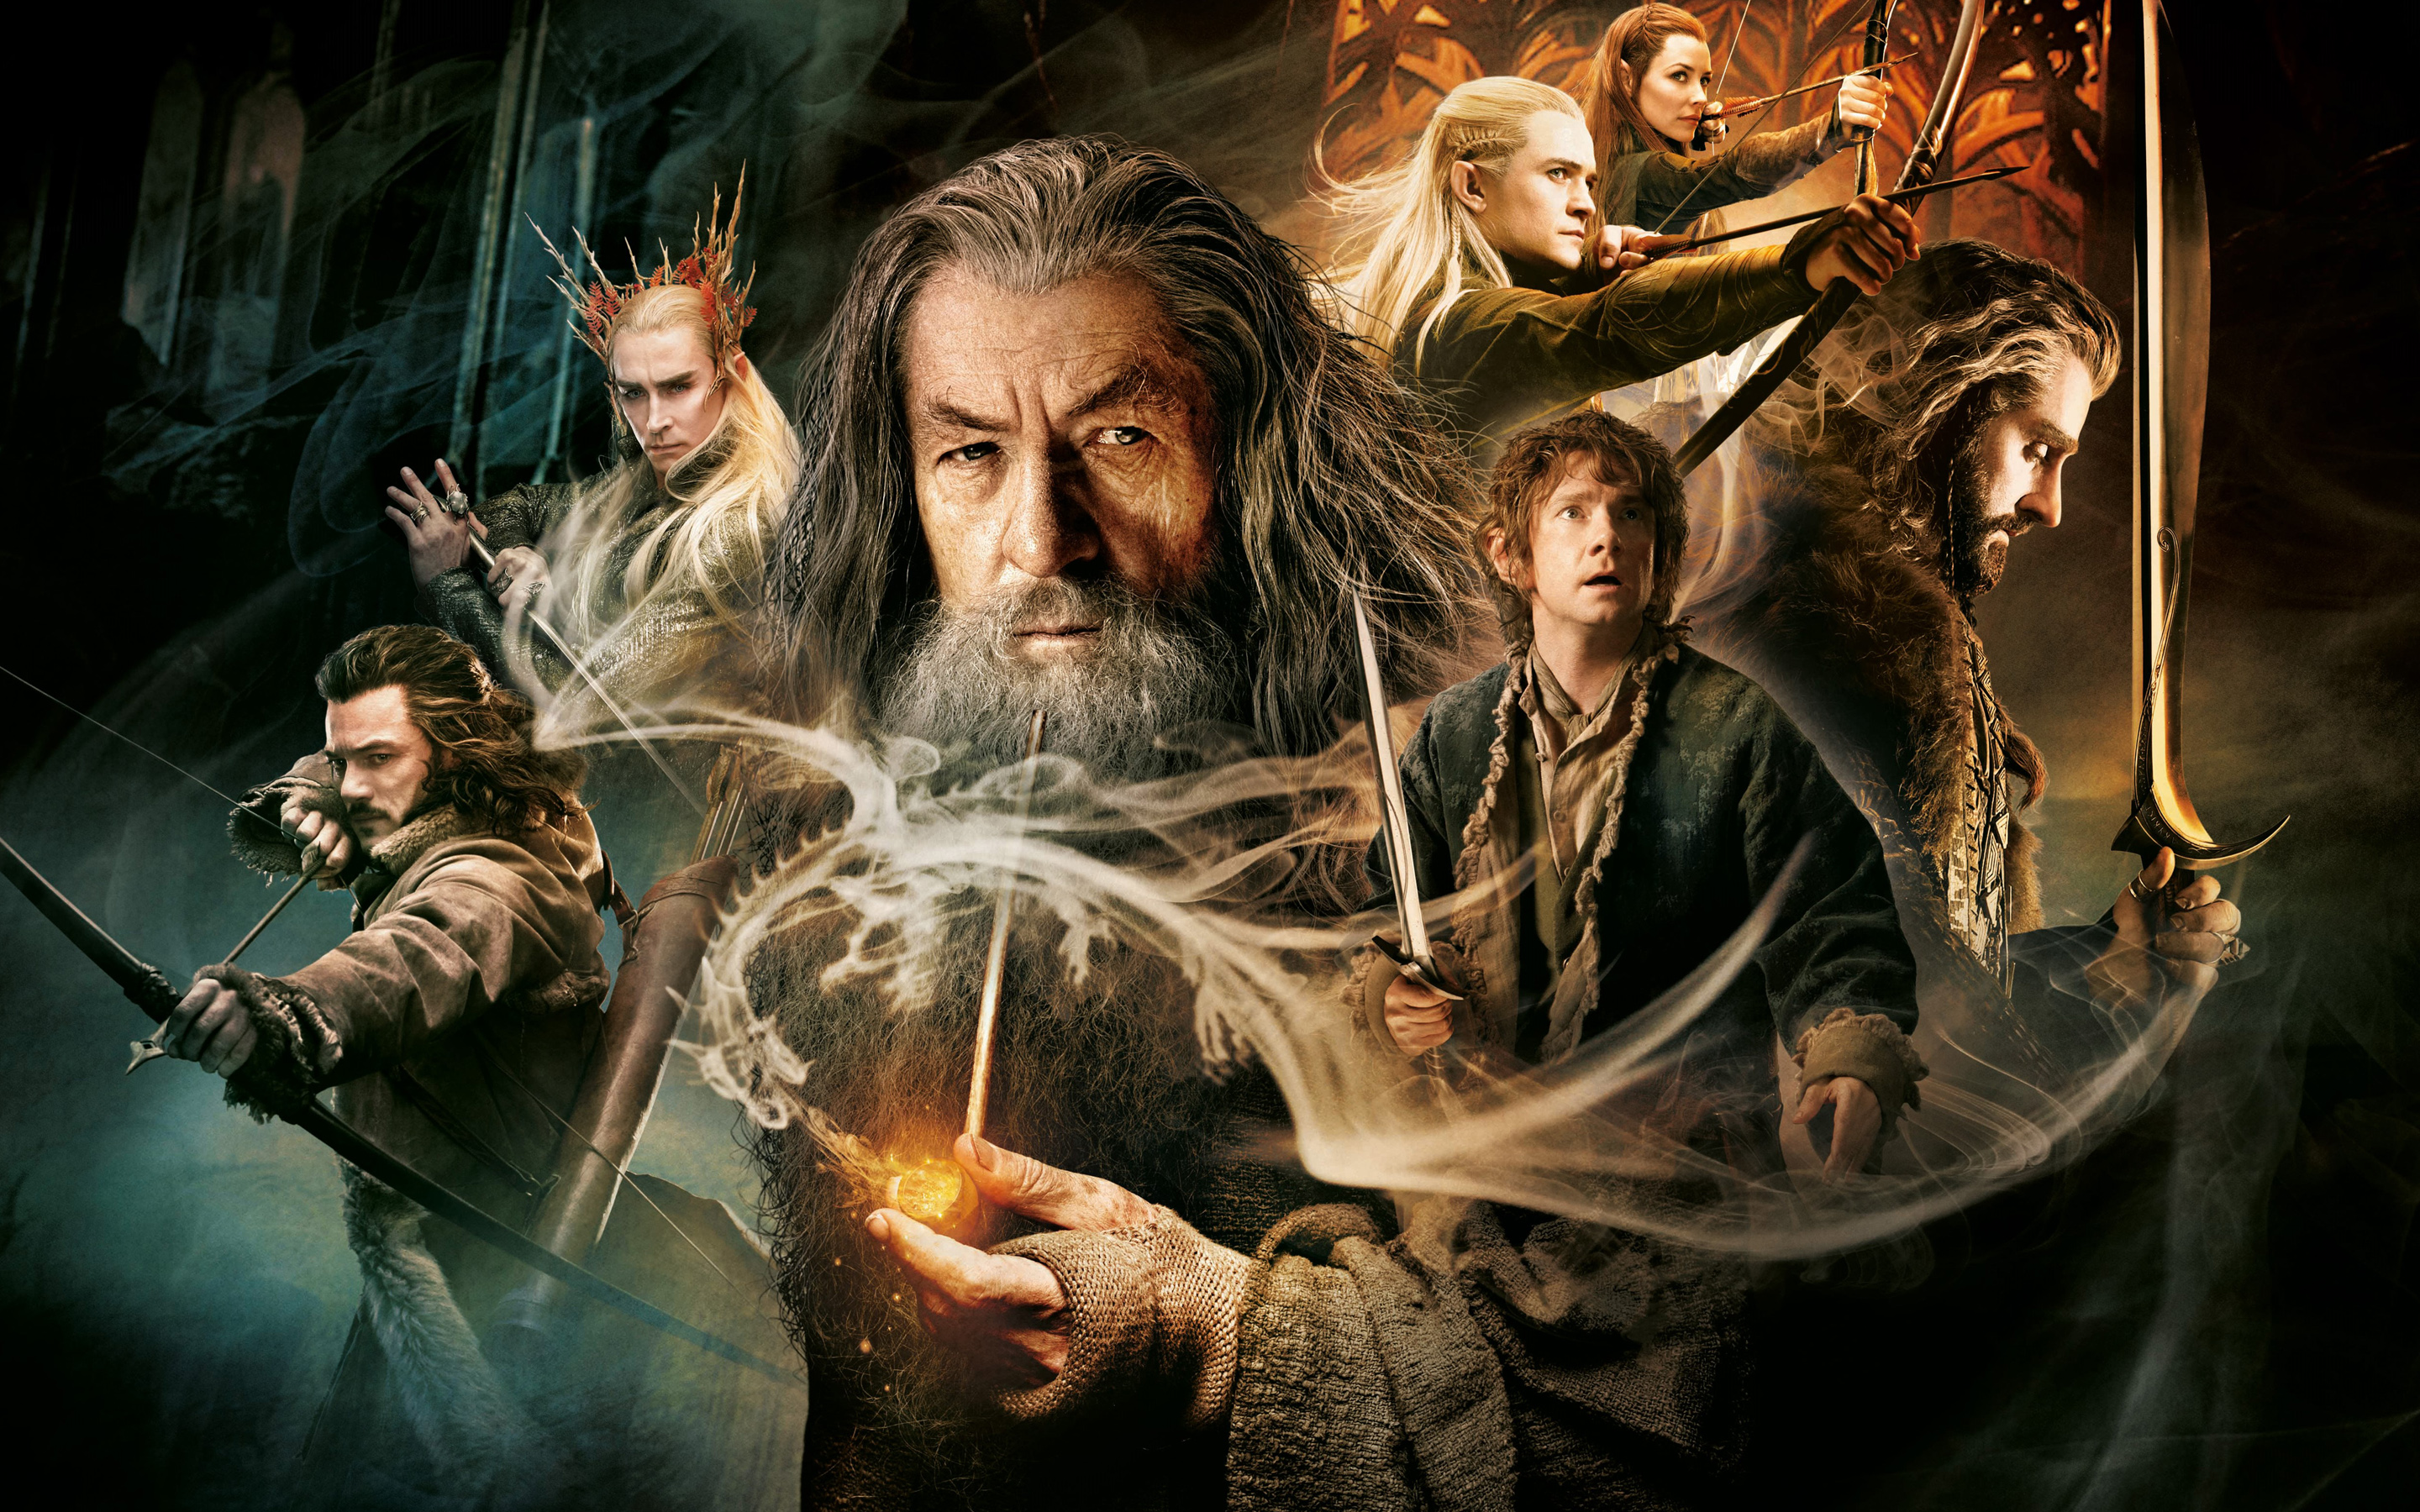 The Hobbit The Desolation of Smaug Wallpapers HD Wallpapers 2880x1800